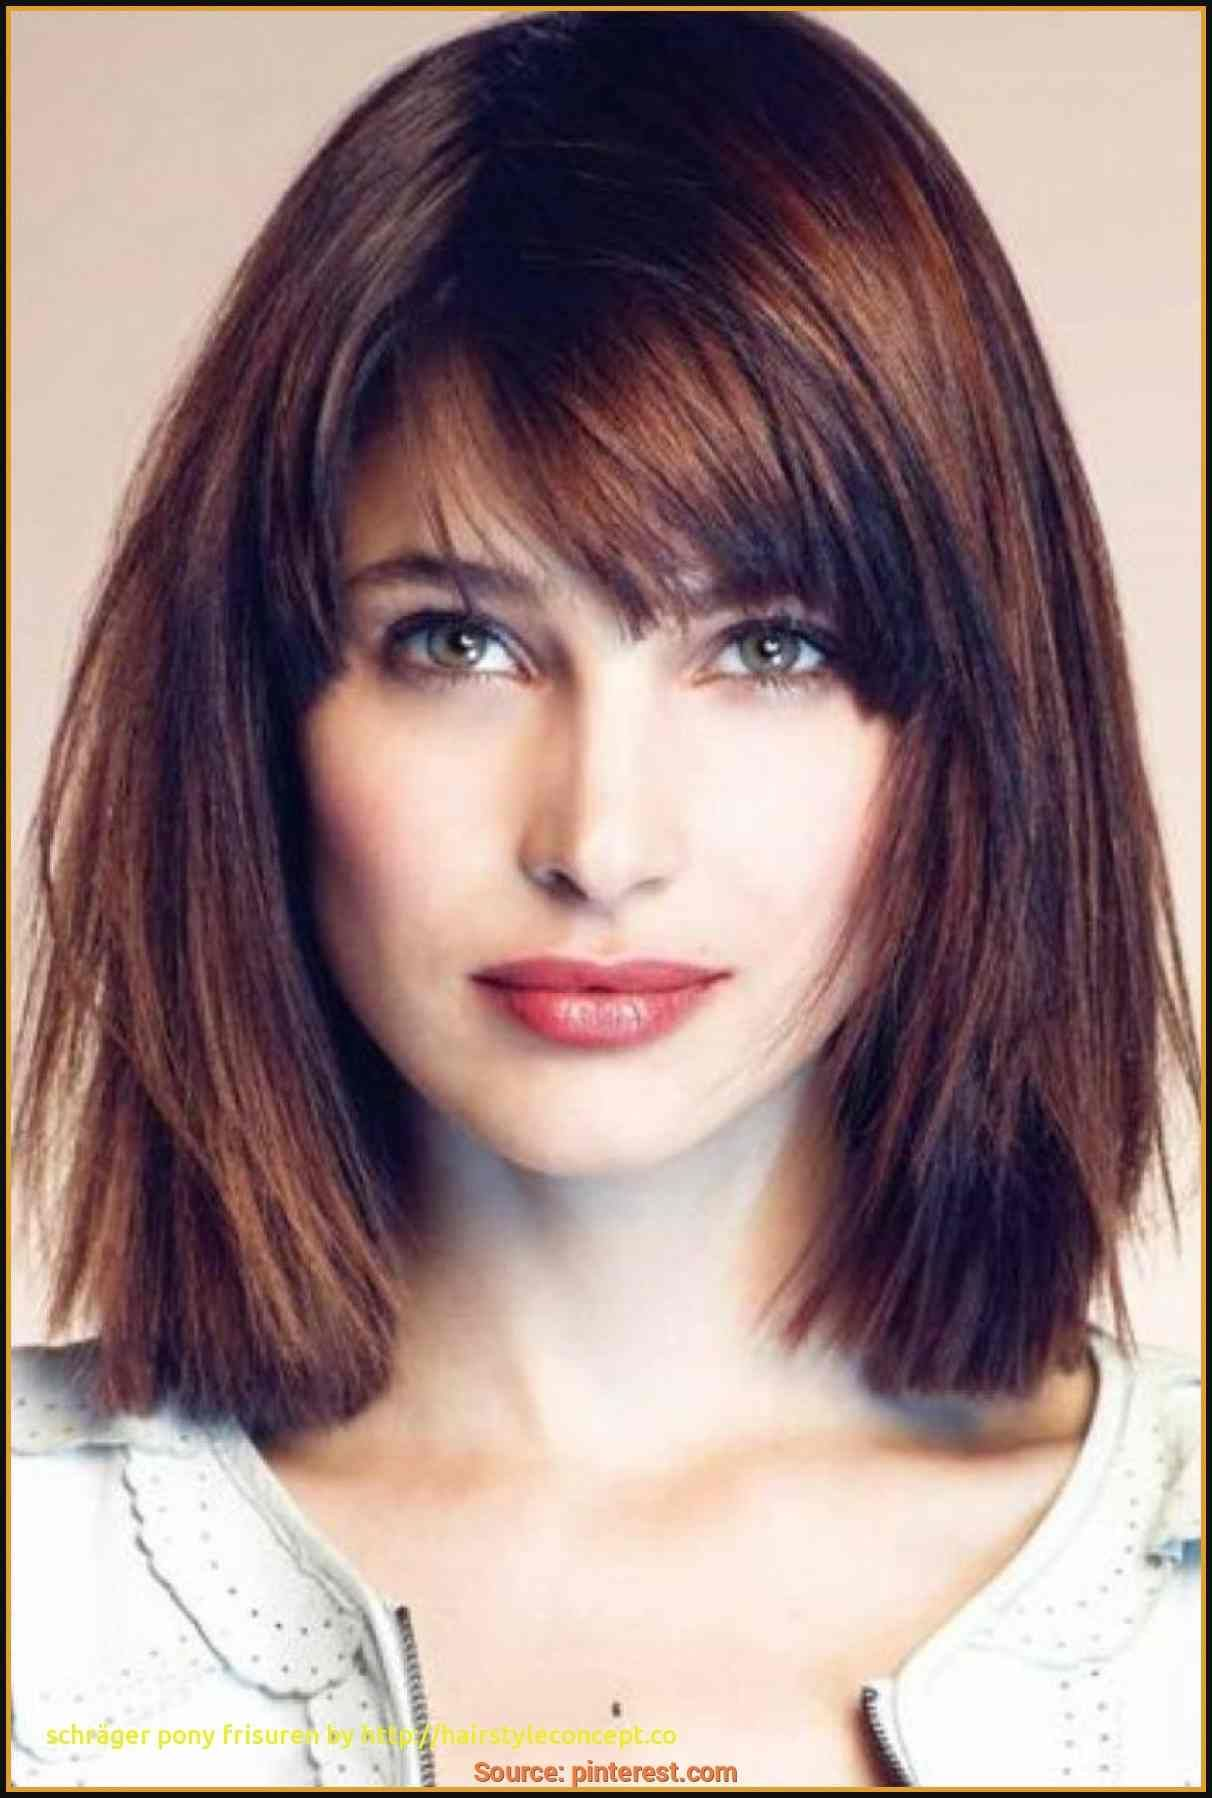 25 Fantastisch Modelle Um Long Bob Frisuren Mit Pony Beste Bob Einfache Frisuren Bangs With Medium Hair Hair Styles Square Face Hairstyles